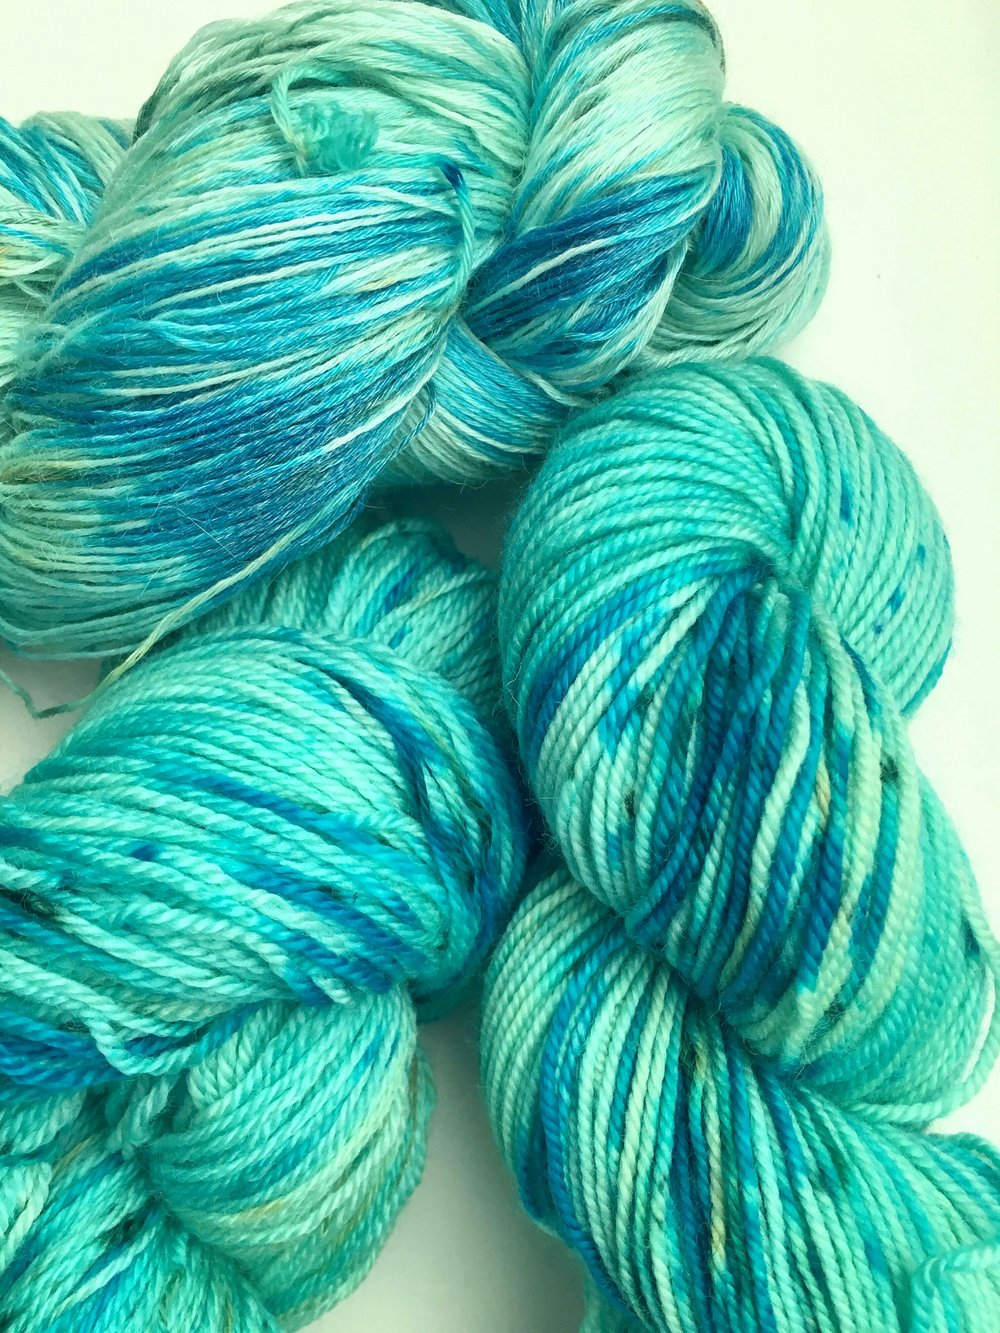 Turquoise Aqua blues with brighter turquoise highlights and green speckles. Pictured on Aura Lace, All Your Base, and Merino Sport